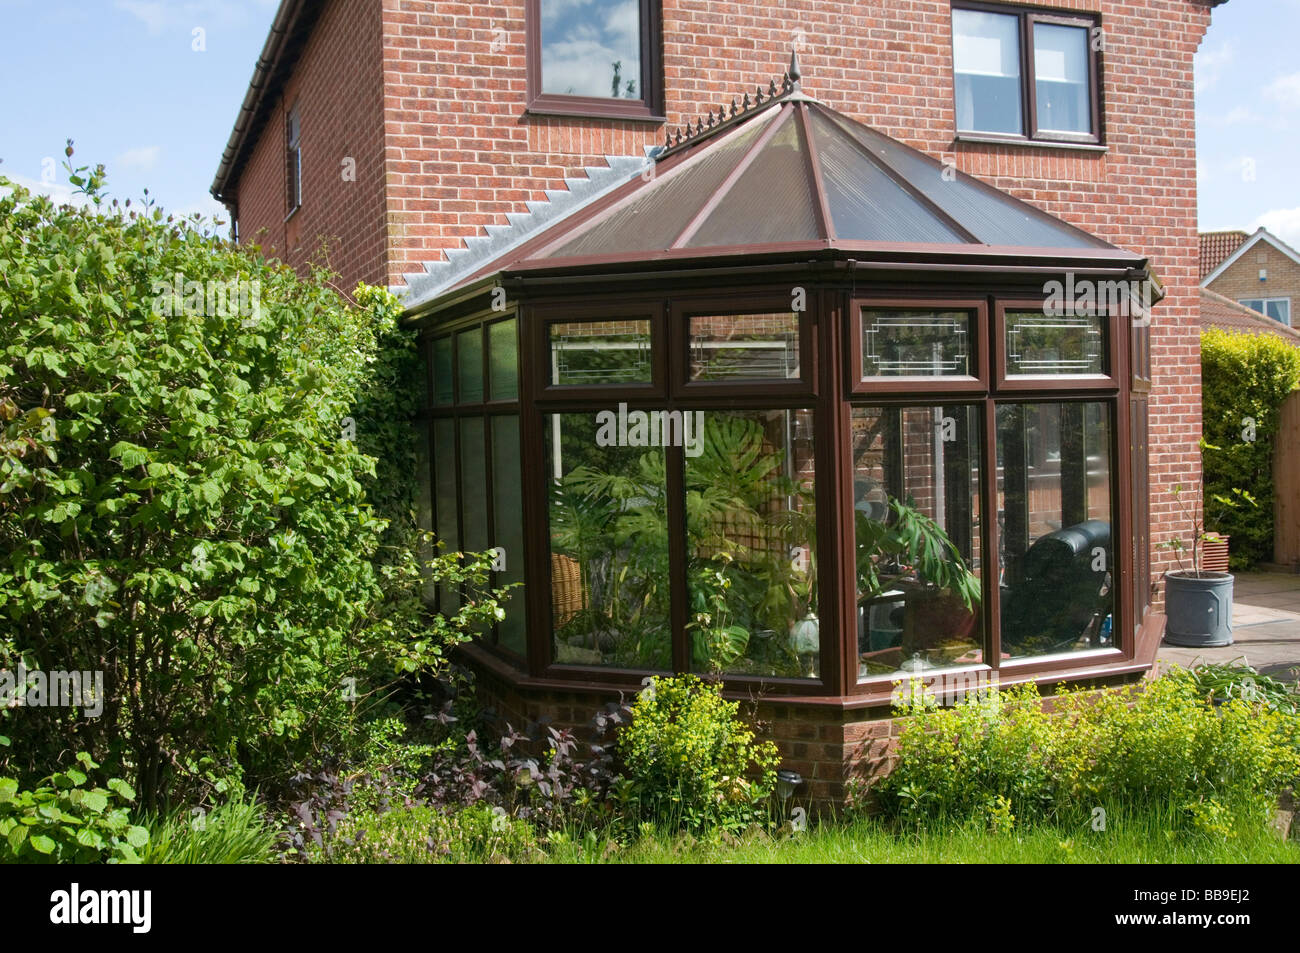 Conservatory conservatories double glazed double glazing for Glass rooms conservatories